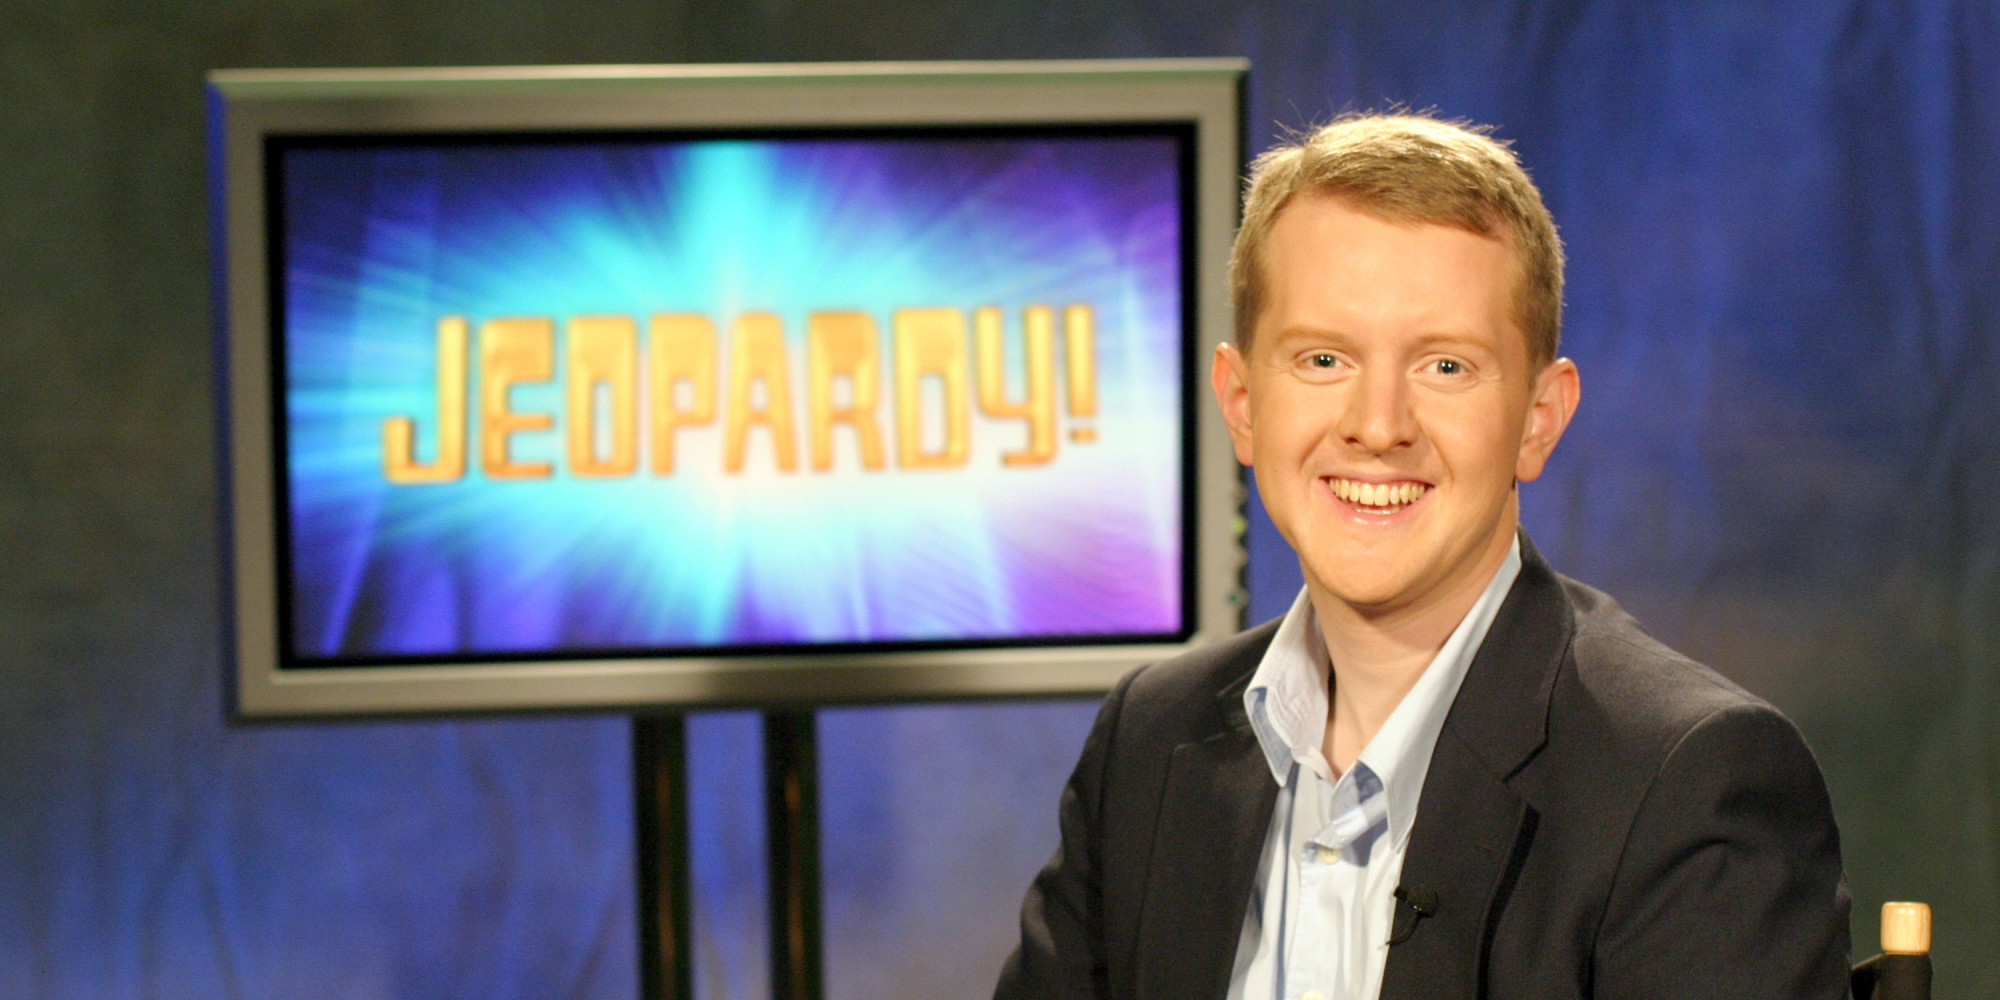 Reddit AMA on Jeopardy - YouTube